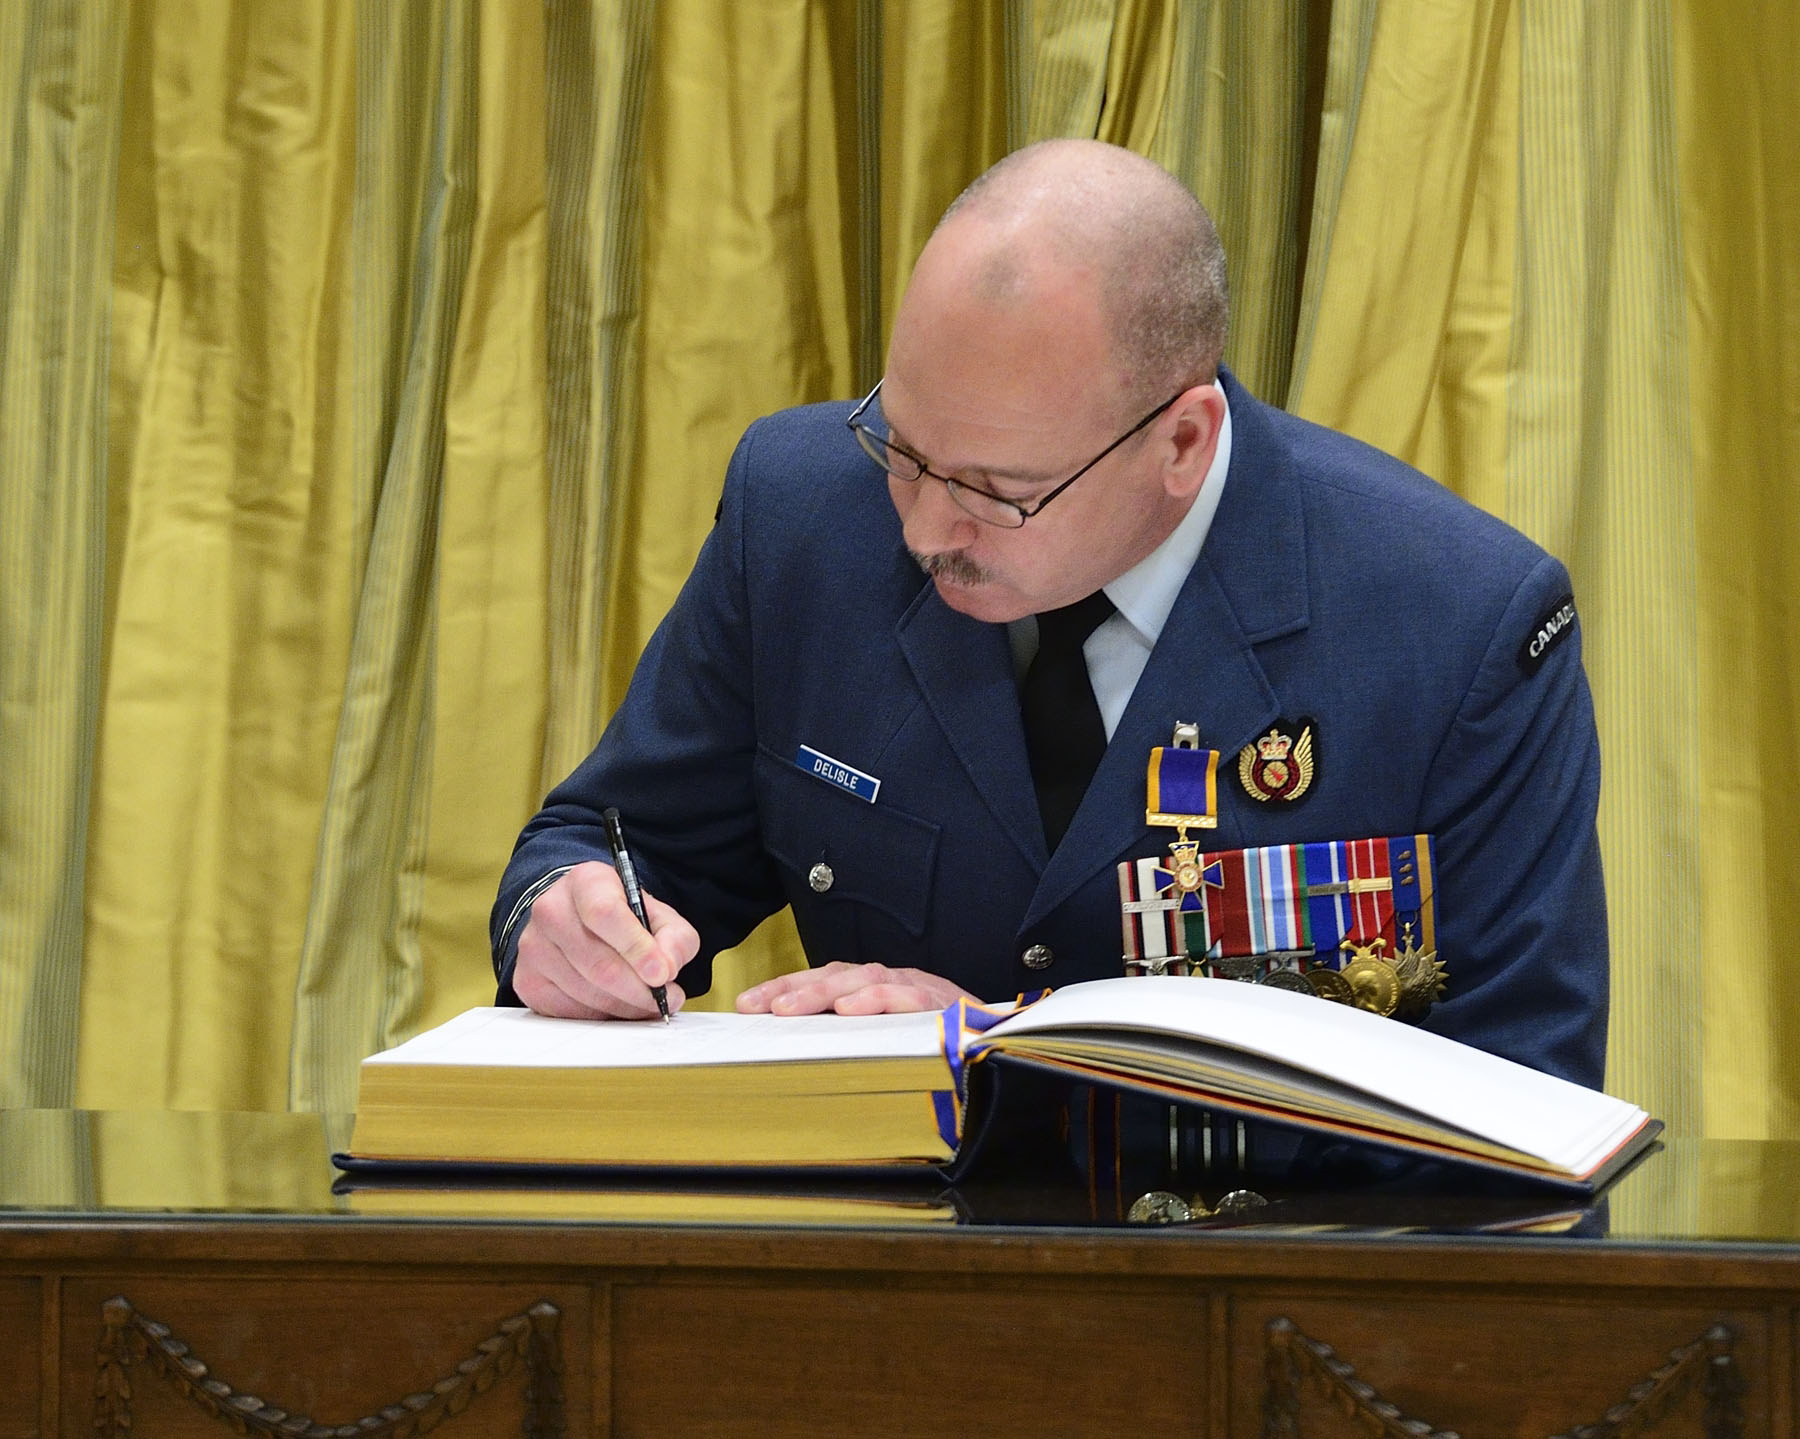 Lieutenant-Colonel Joseph Jean Marc Délisle, O.M.M., C.D., signs the register.